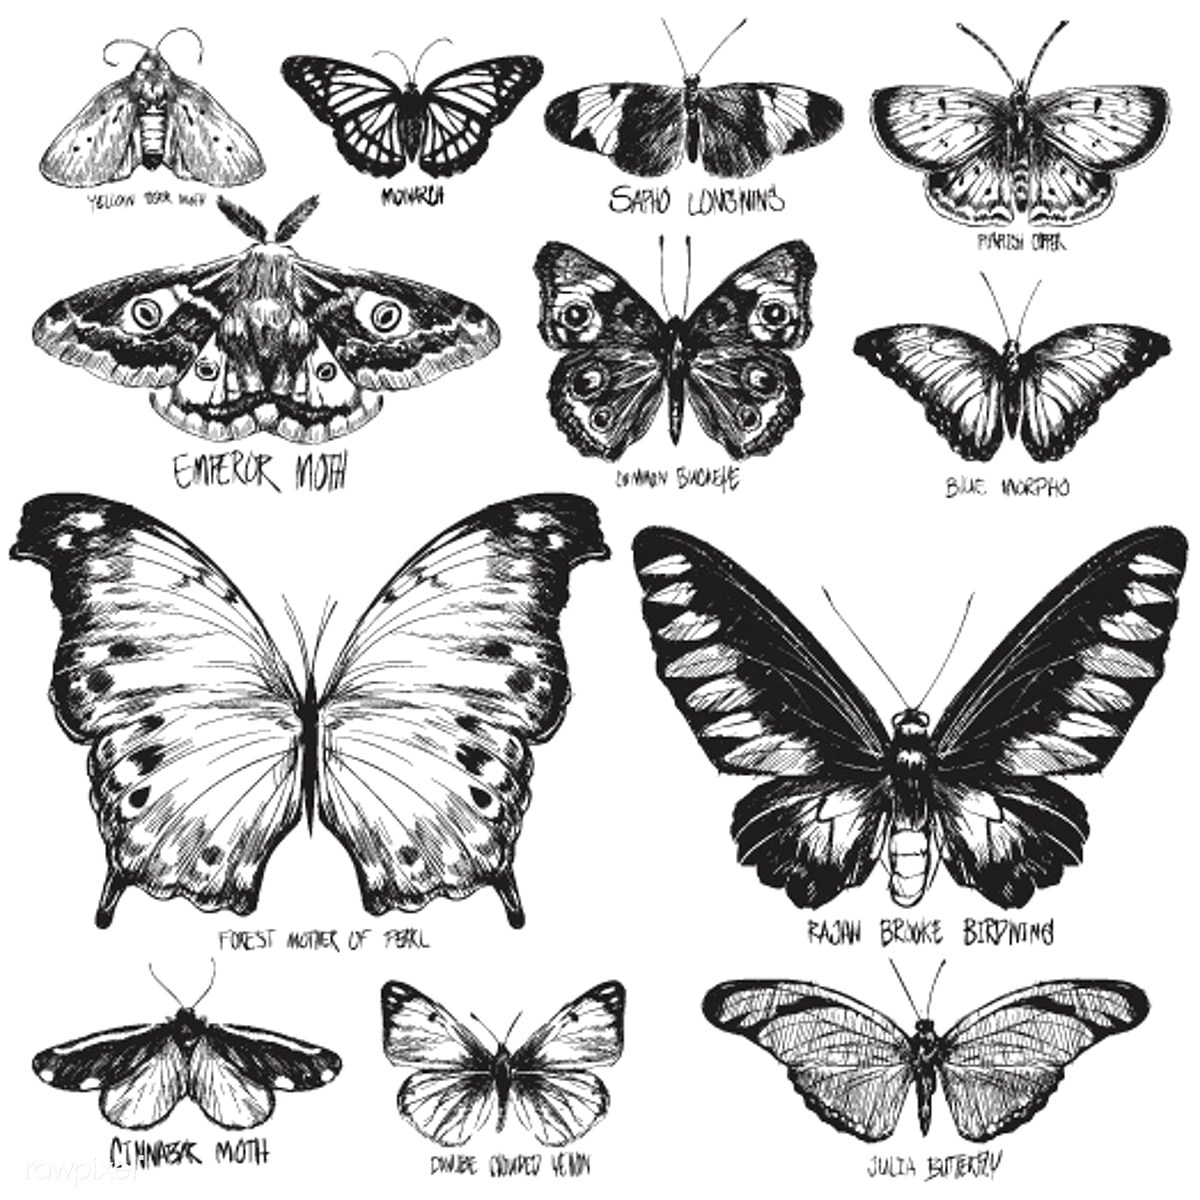 Animal animals butterflies butterfly collection drawing group illustration